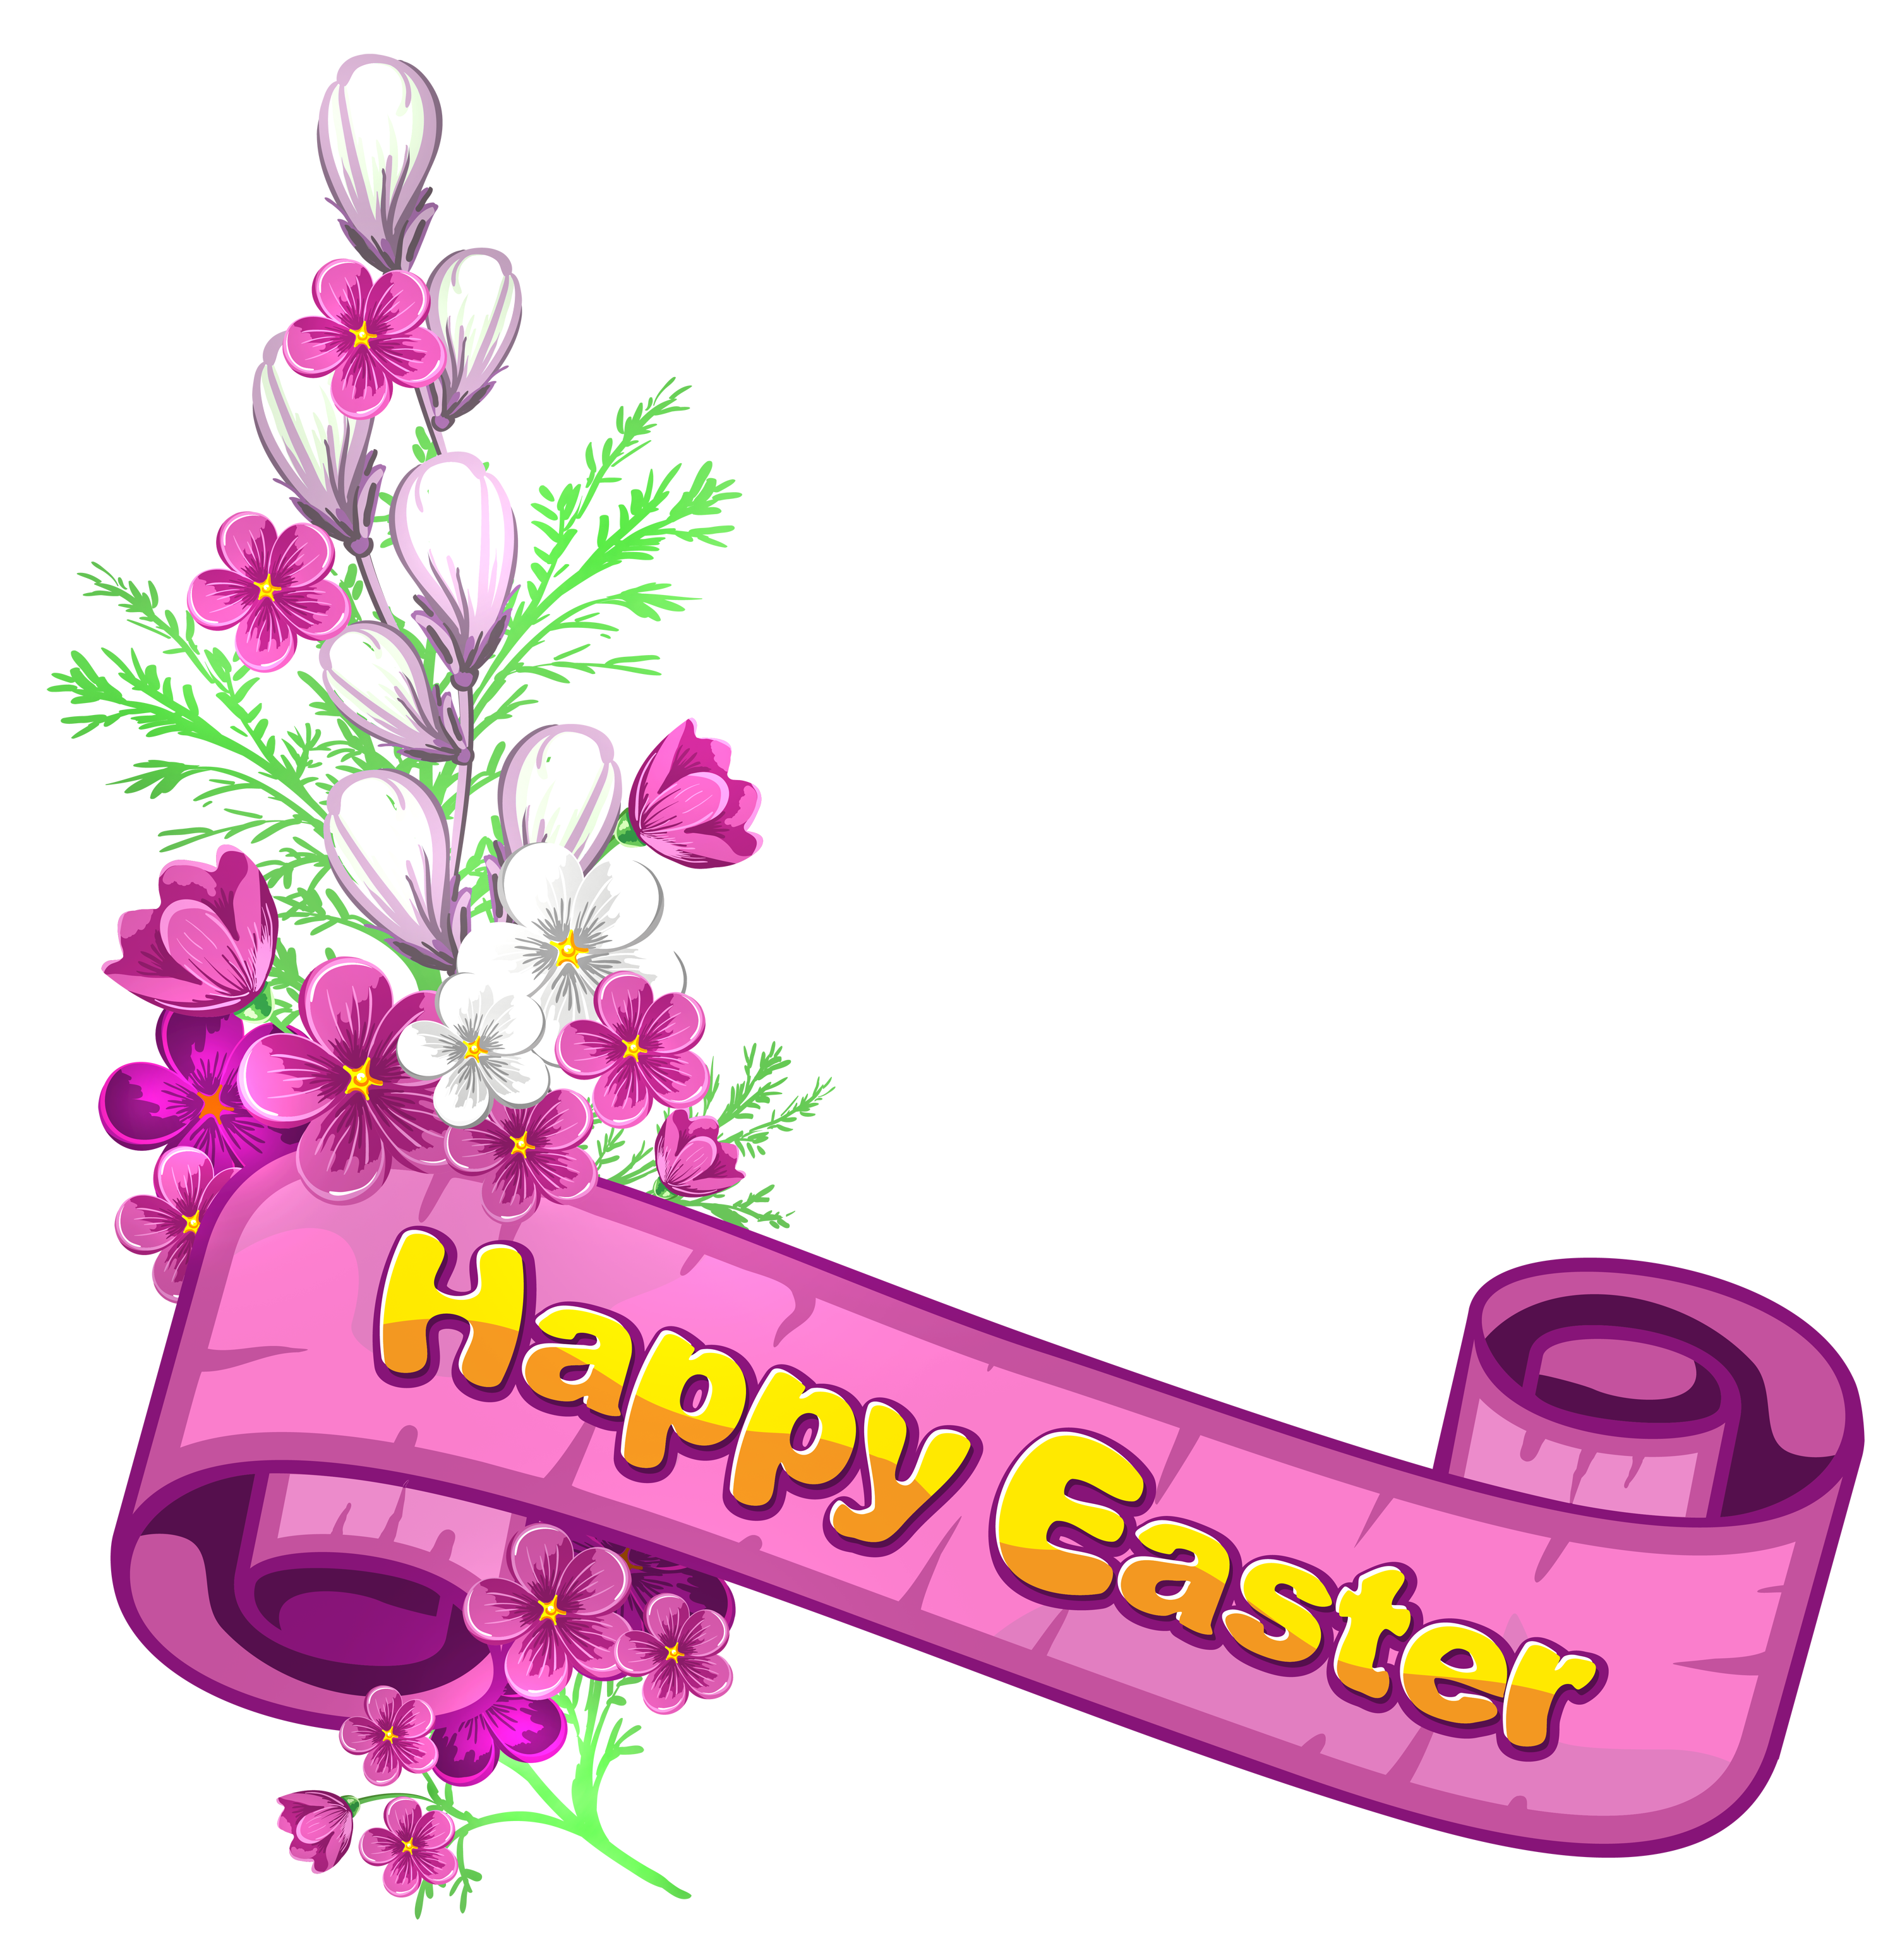 Happy easter cross clipart graphic freeuse Pink_Happy_Easter_Banner_and_Flowers.png?m=1399672800 graphic freeuse